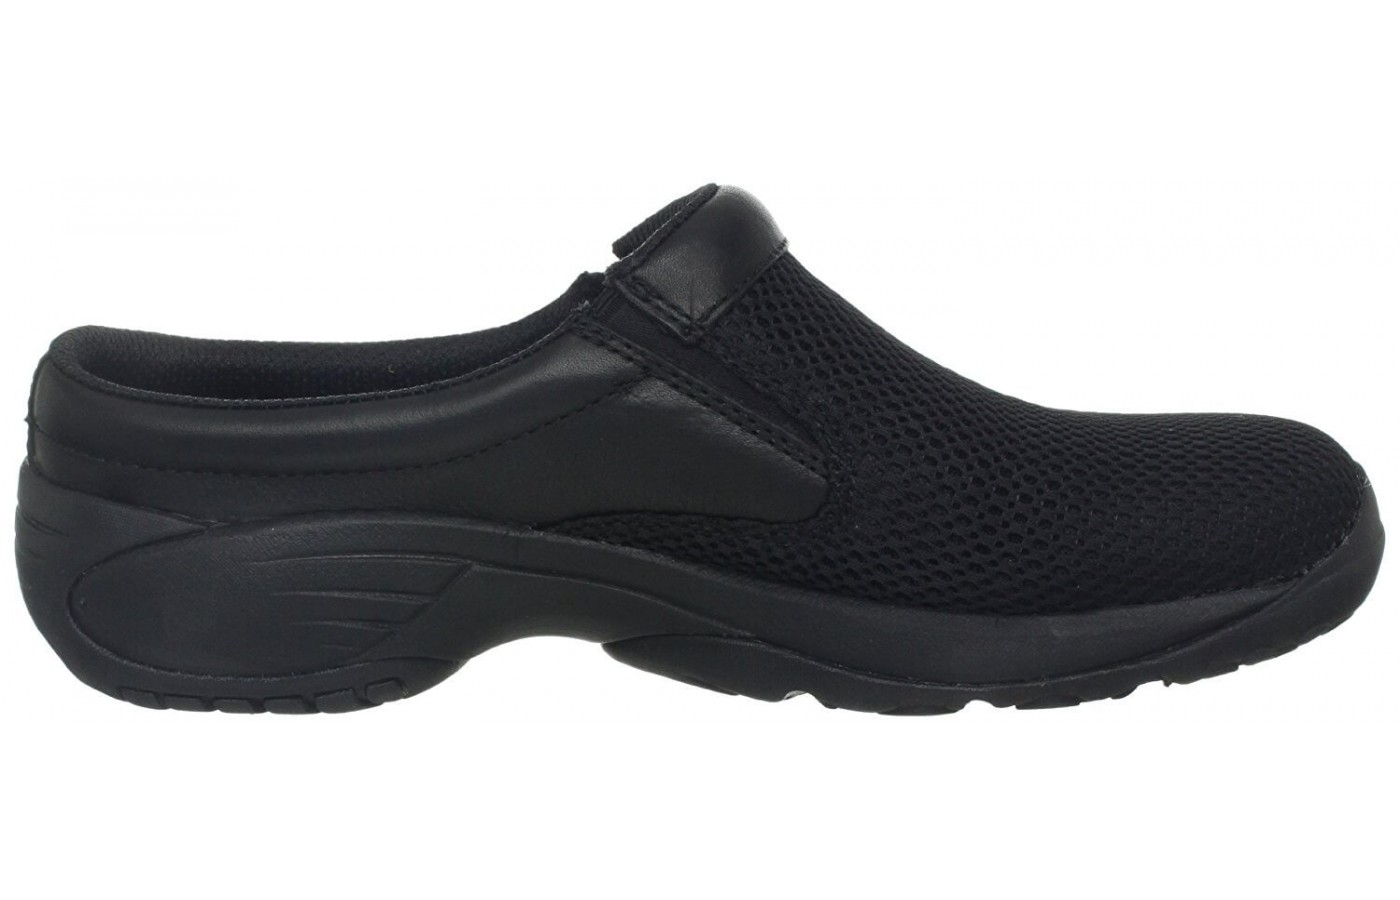 The Merrell Encore Bypass has an Air Cushion heel